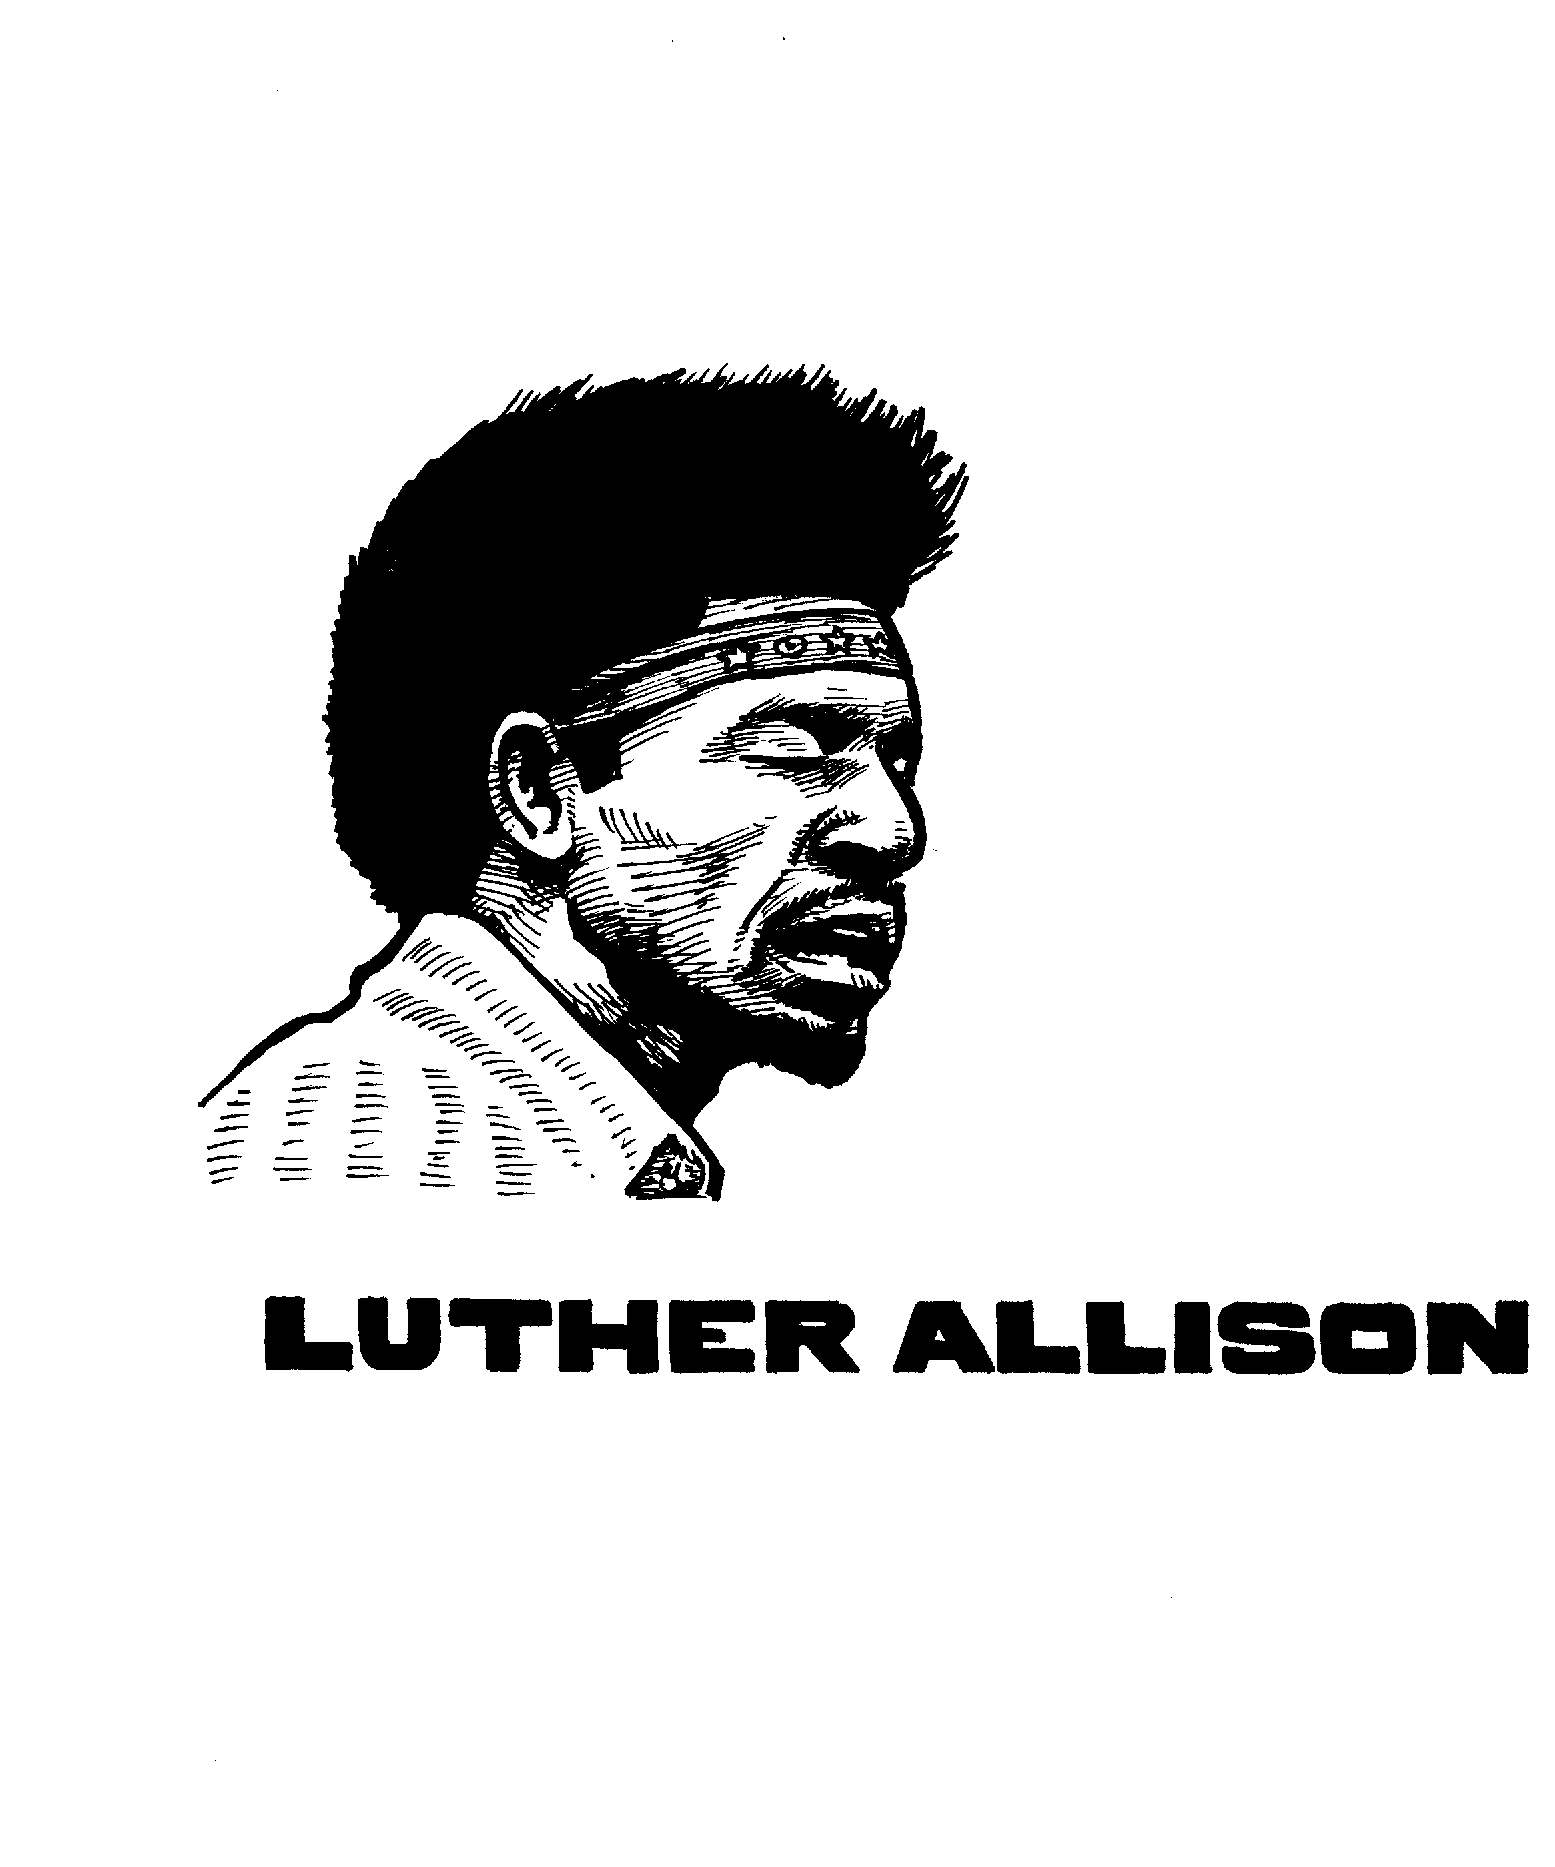 $250, Luther Allison and logo used in Secret History of Chicago Music